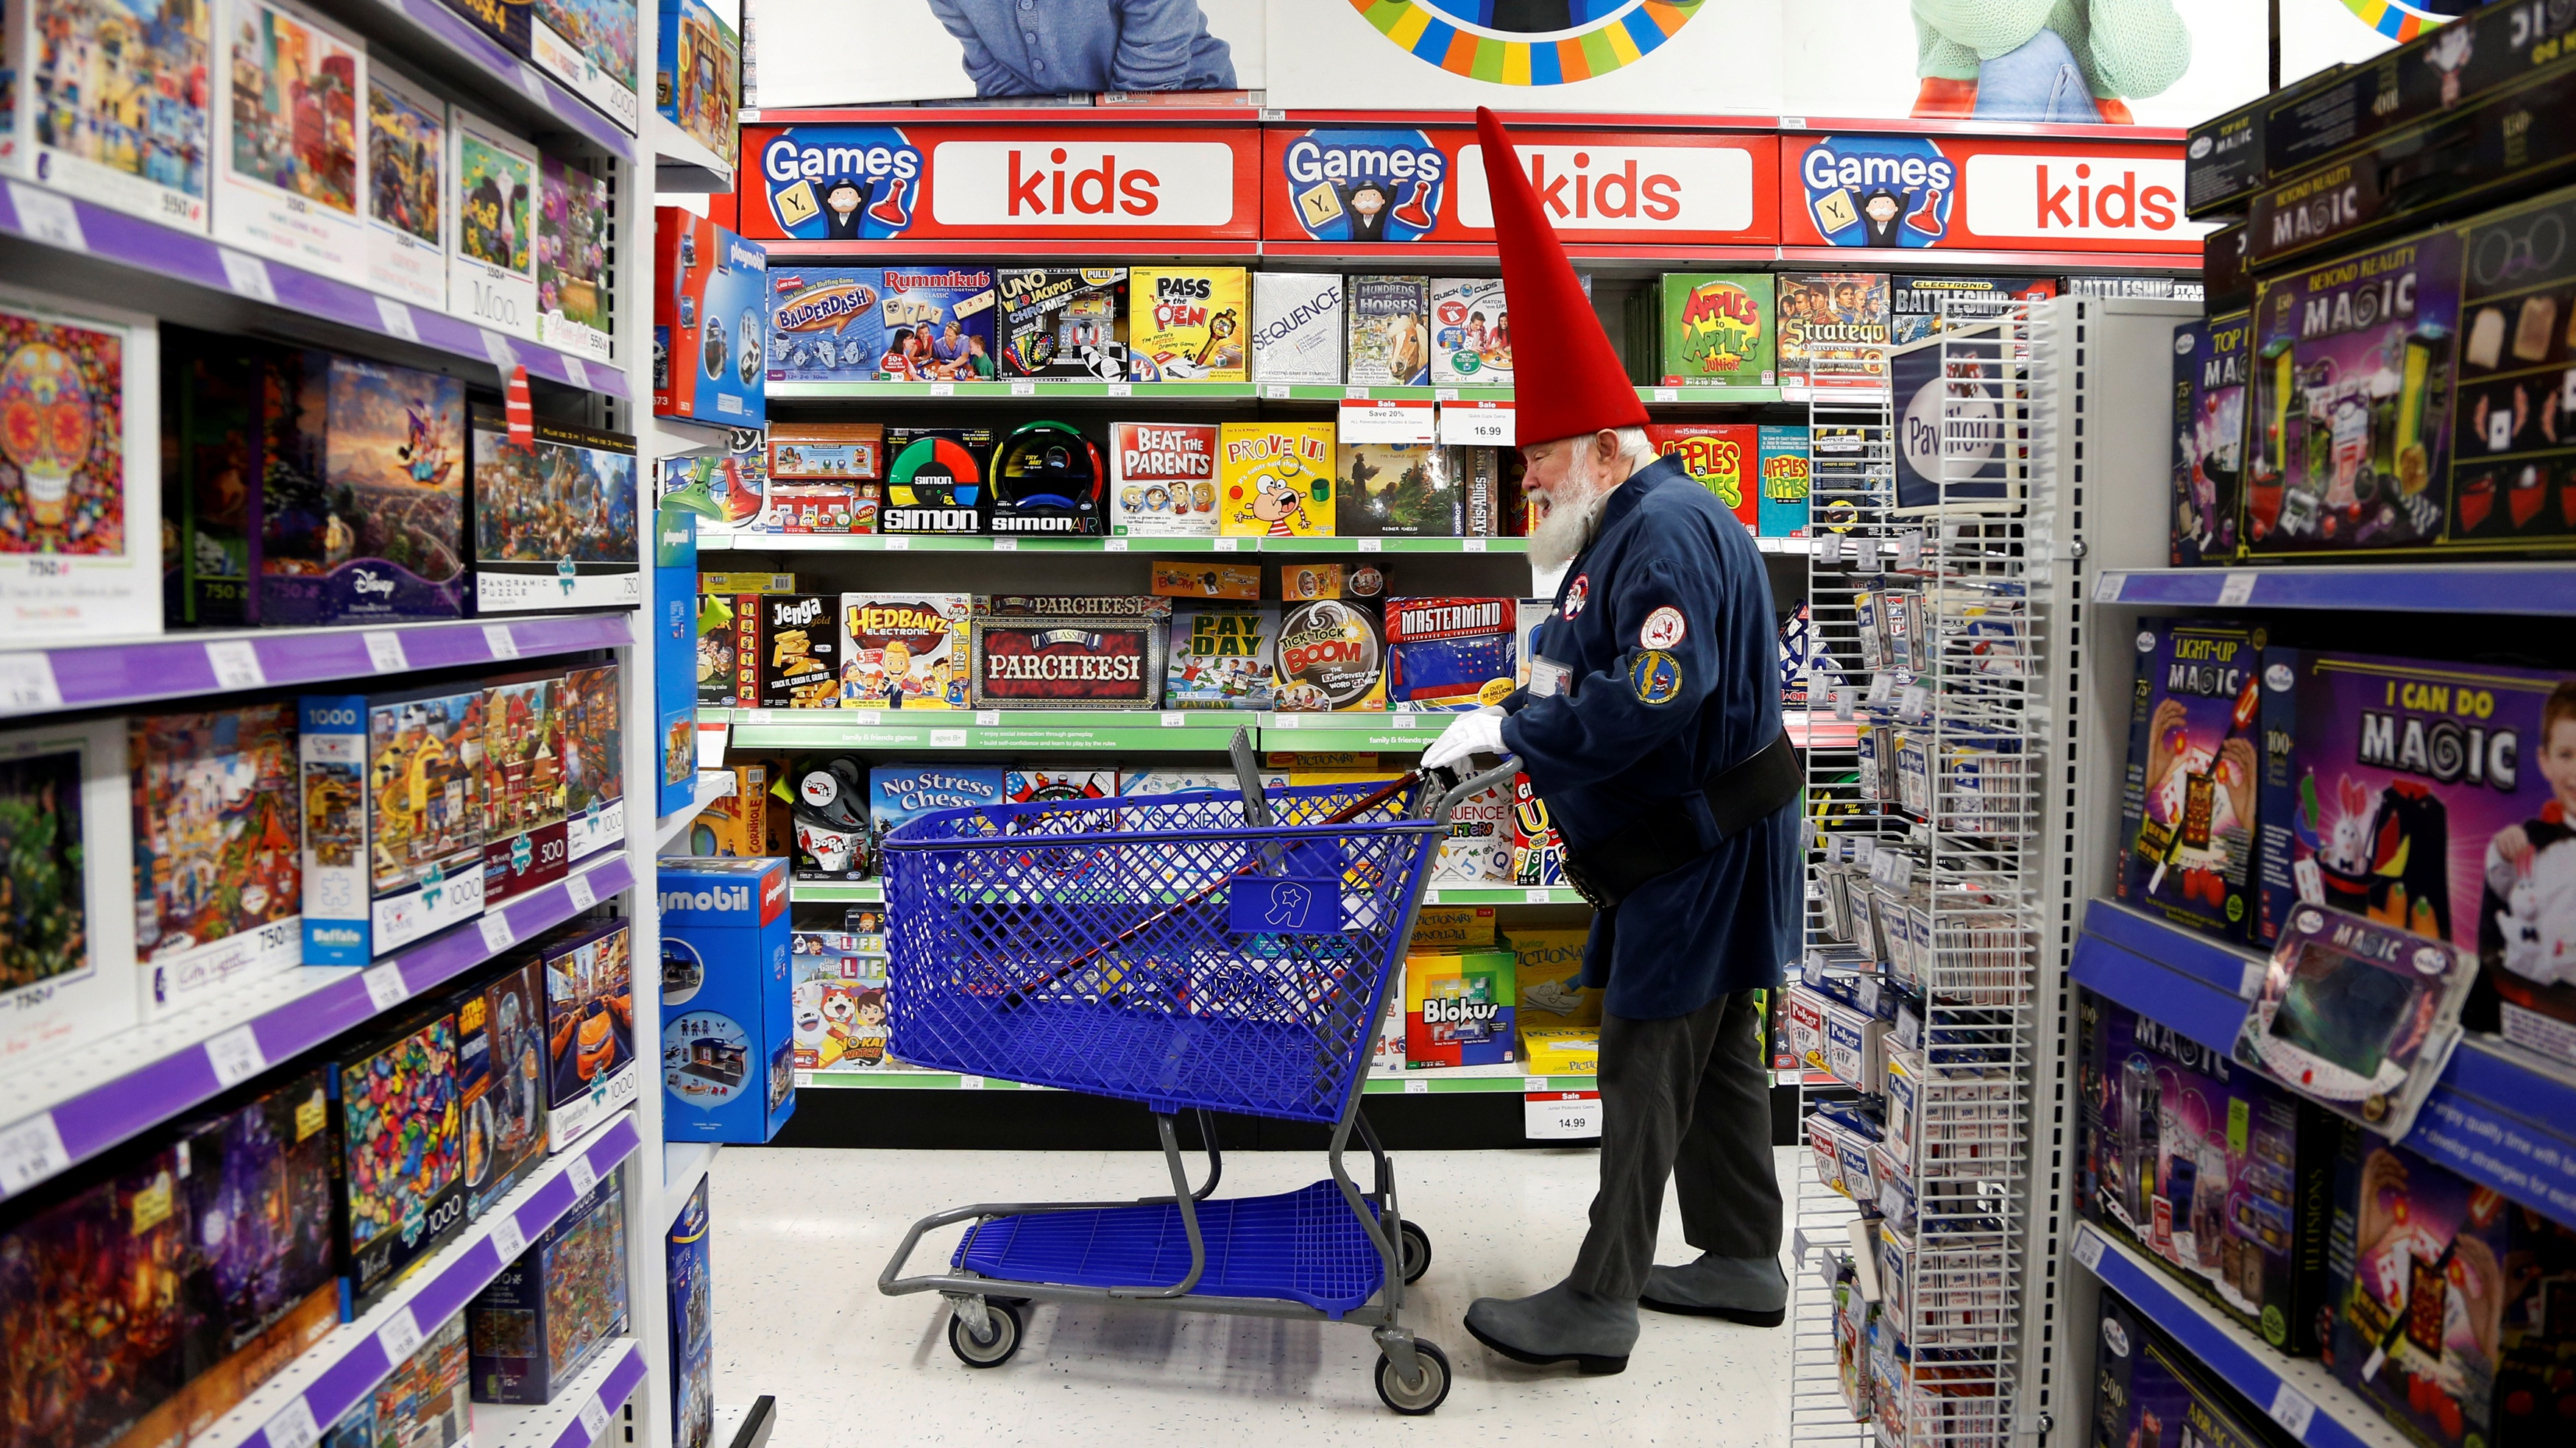 Santa Fred Osther from Oslo, Norway shops at a Toys R Us during a field trip from the Charles W. Howard Santa Claus School in Midland, Michigan, U.S. October 28, 2016. REUTERS/Christinne Muschi